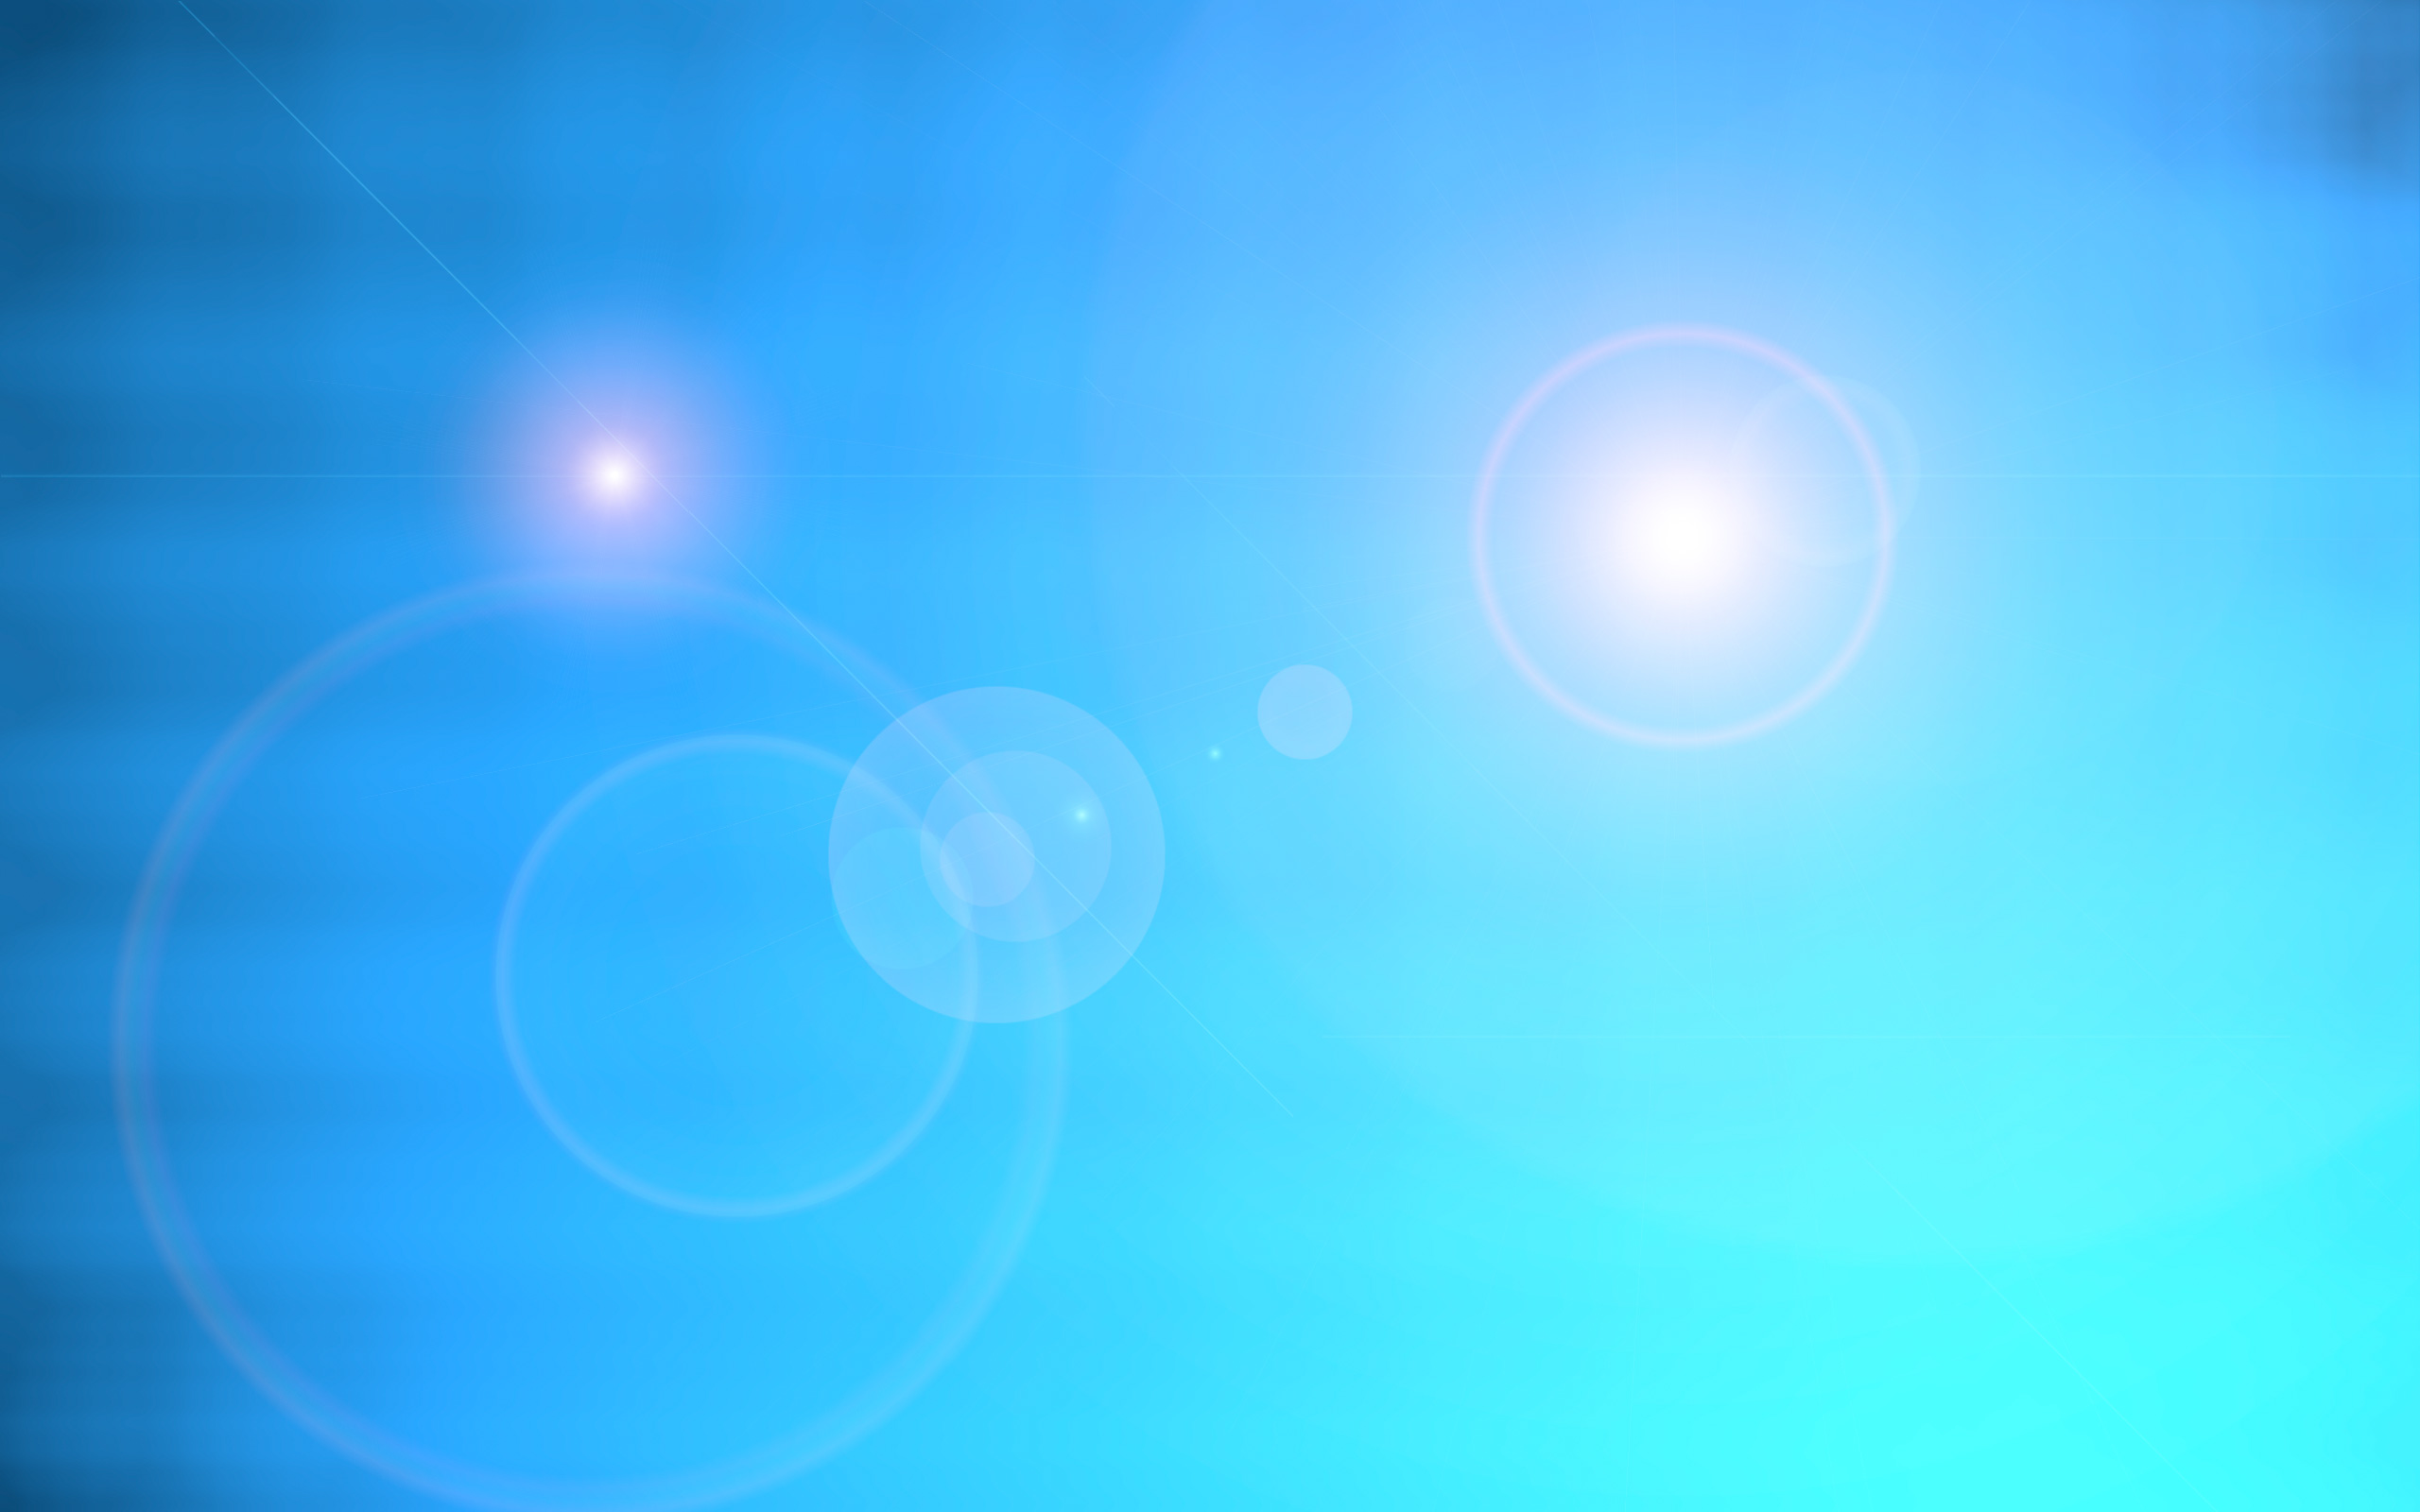 Light and Airy Blue Wallpapers 2560x1600